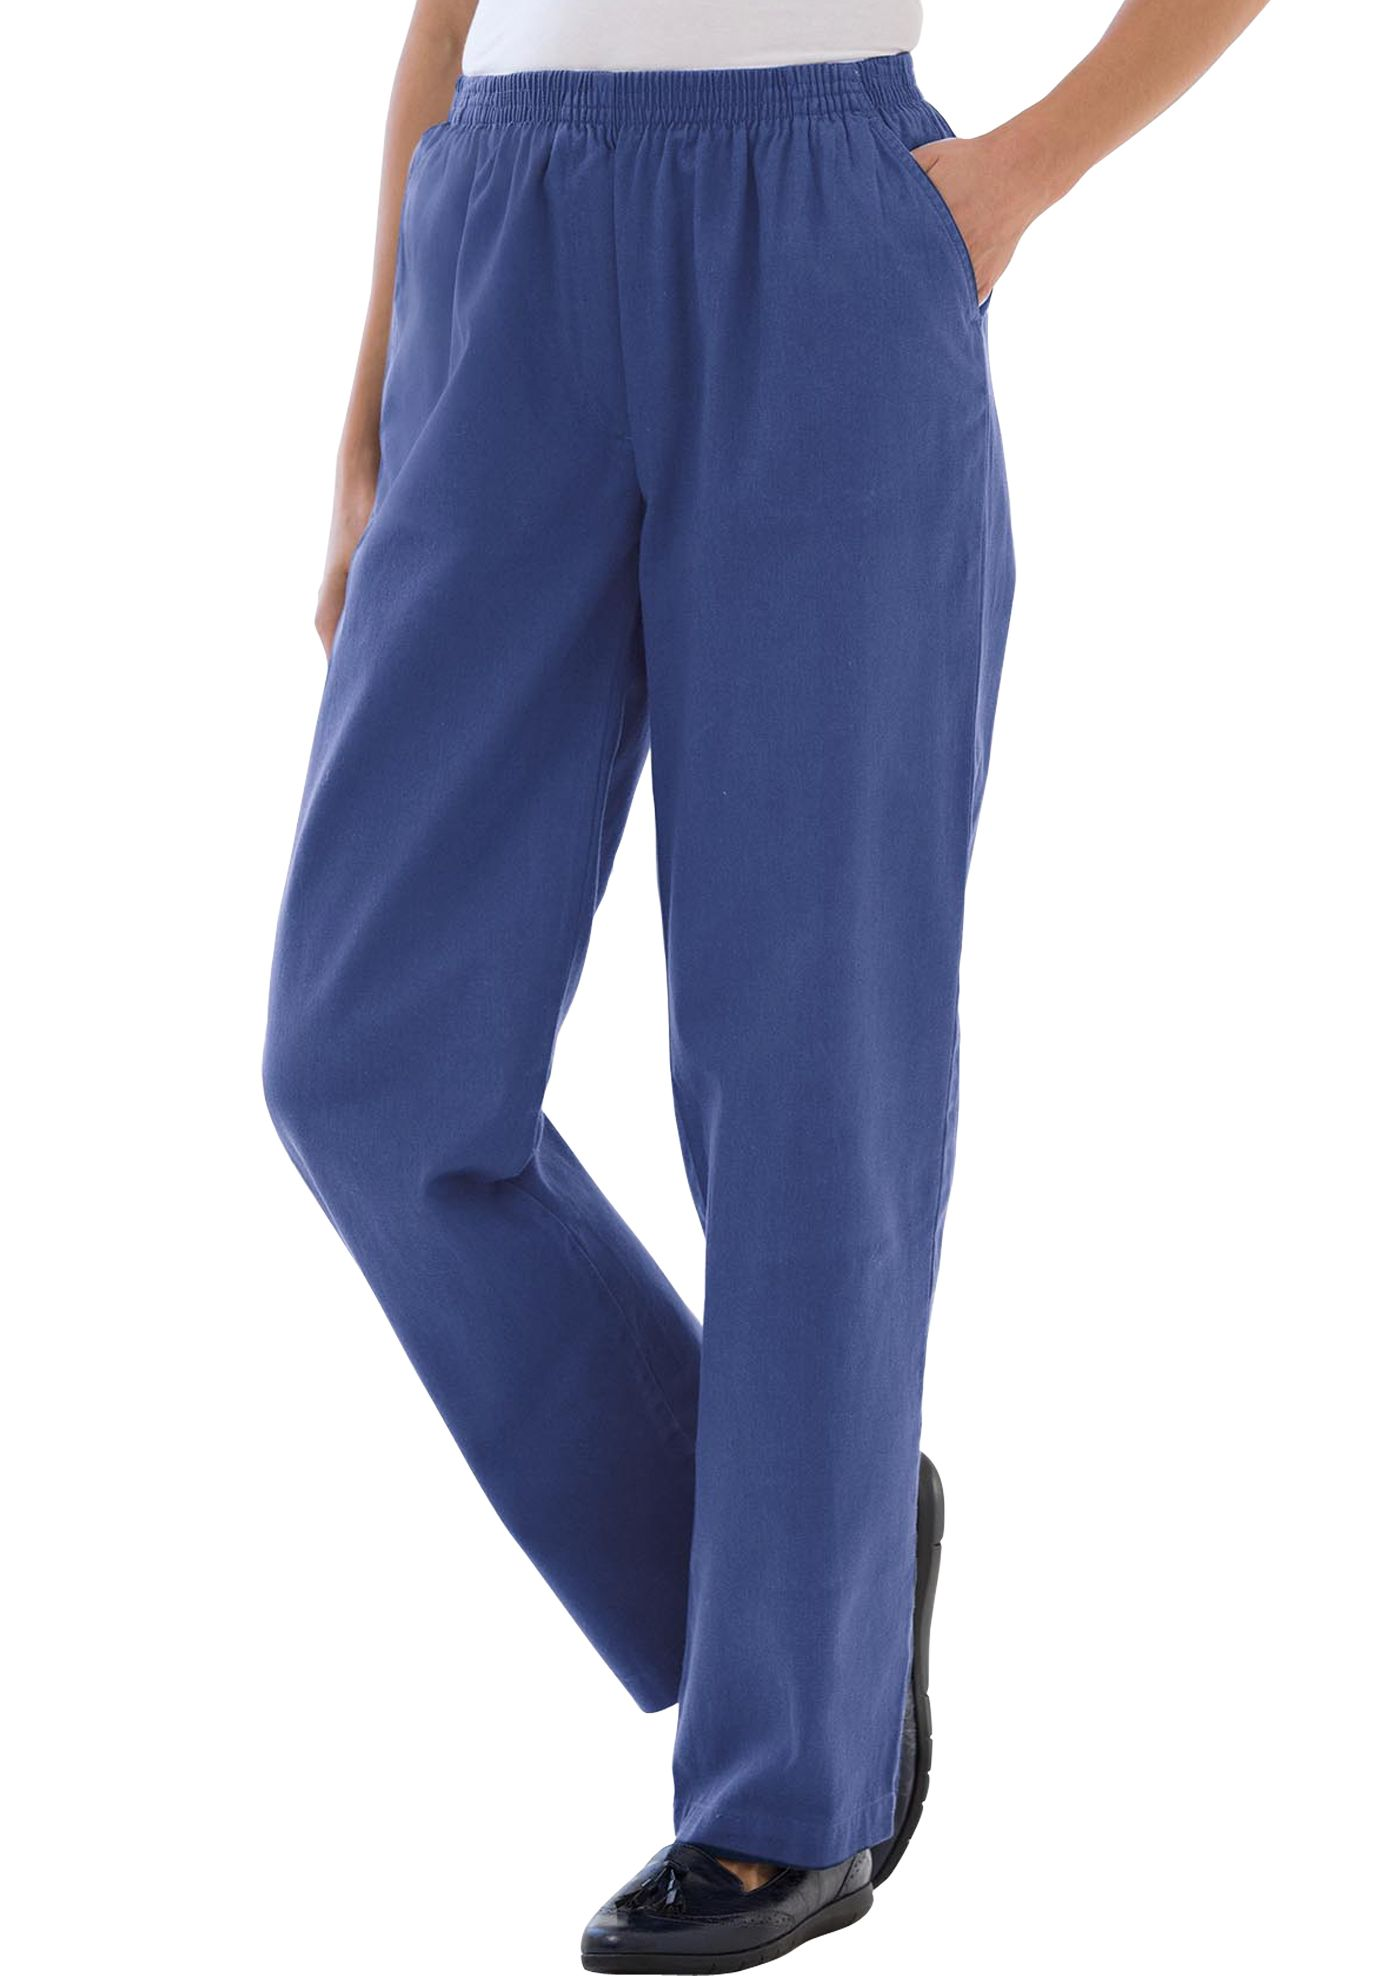 0a47026cd4366 Pants in soft twill